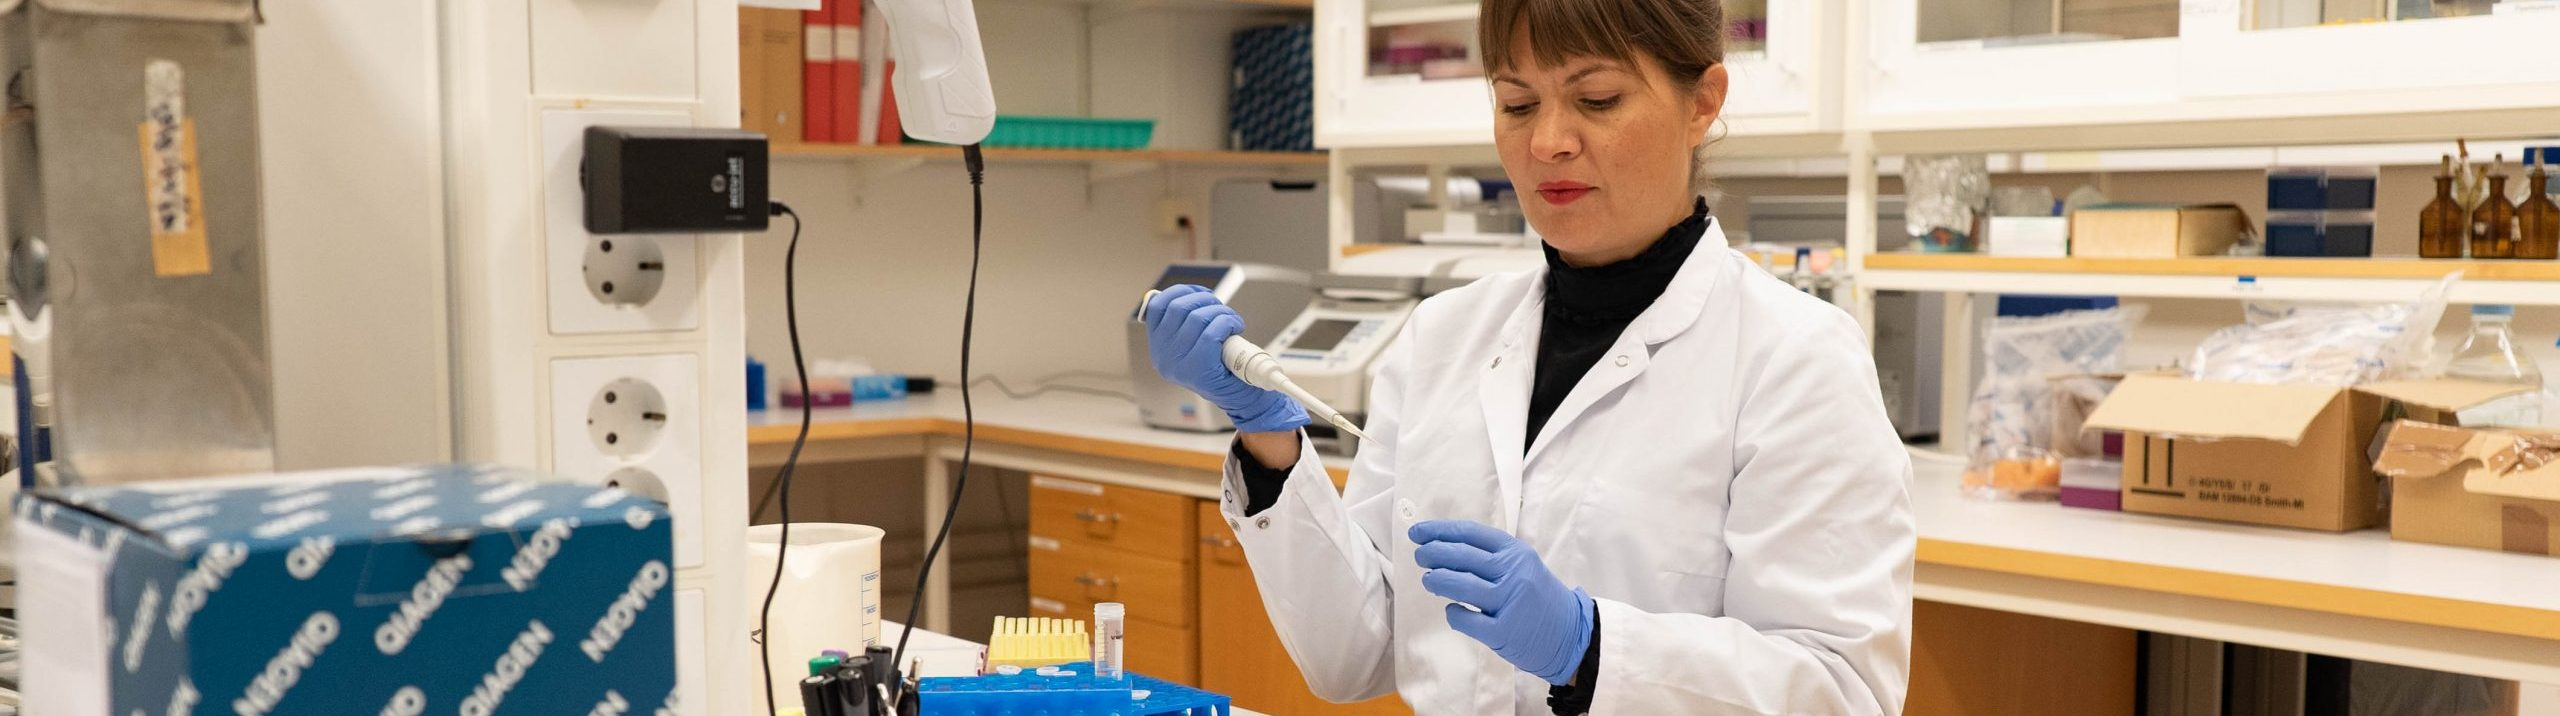 Woman standing in a lab coat and gloves in a molecular laboratory performing experiments.